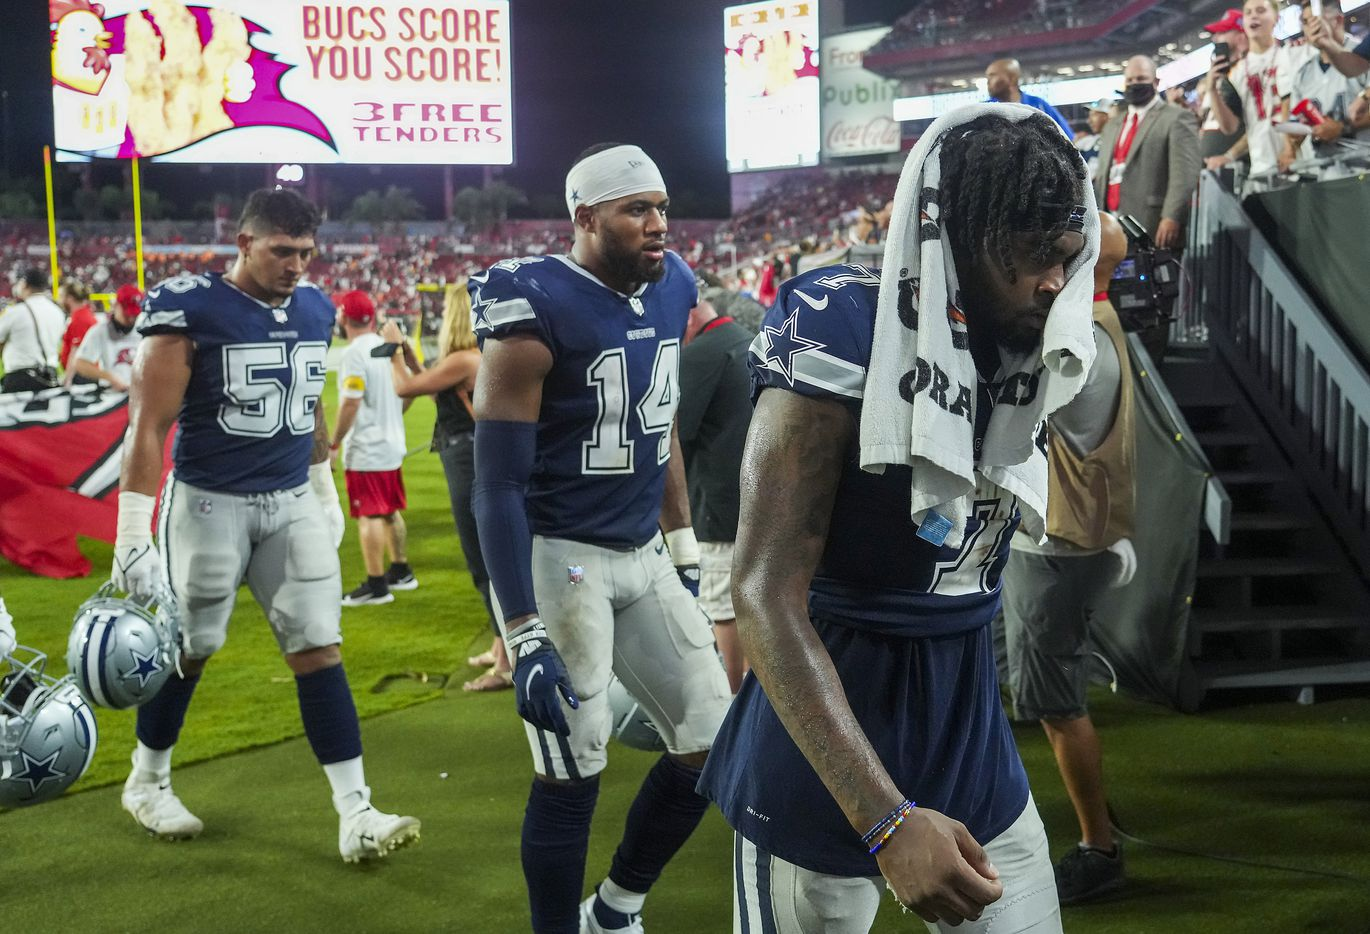 Dallas Cowboys cornerback Trevon Diggs (7), linebacker Jabril Cox (14) and defensive end Bradlee Anae (56) leave the field following a loss to the Tampa Bay Buccaneers in an NFL football game at Raymond James Stadium on Thursday, Sept. 9, 2021, in Tampa, Fla. The  Buccaneers won the game 31-29. (Smiley N. Pool/The Dallas Morning News)